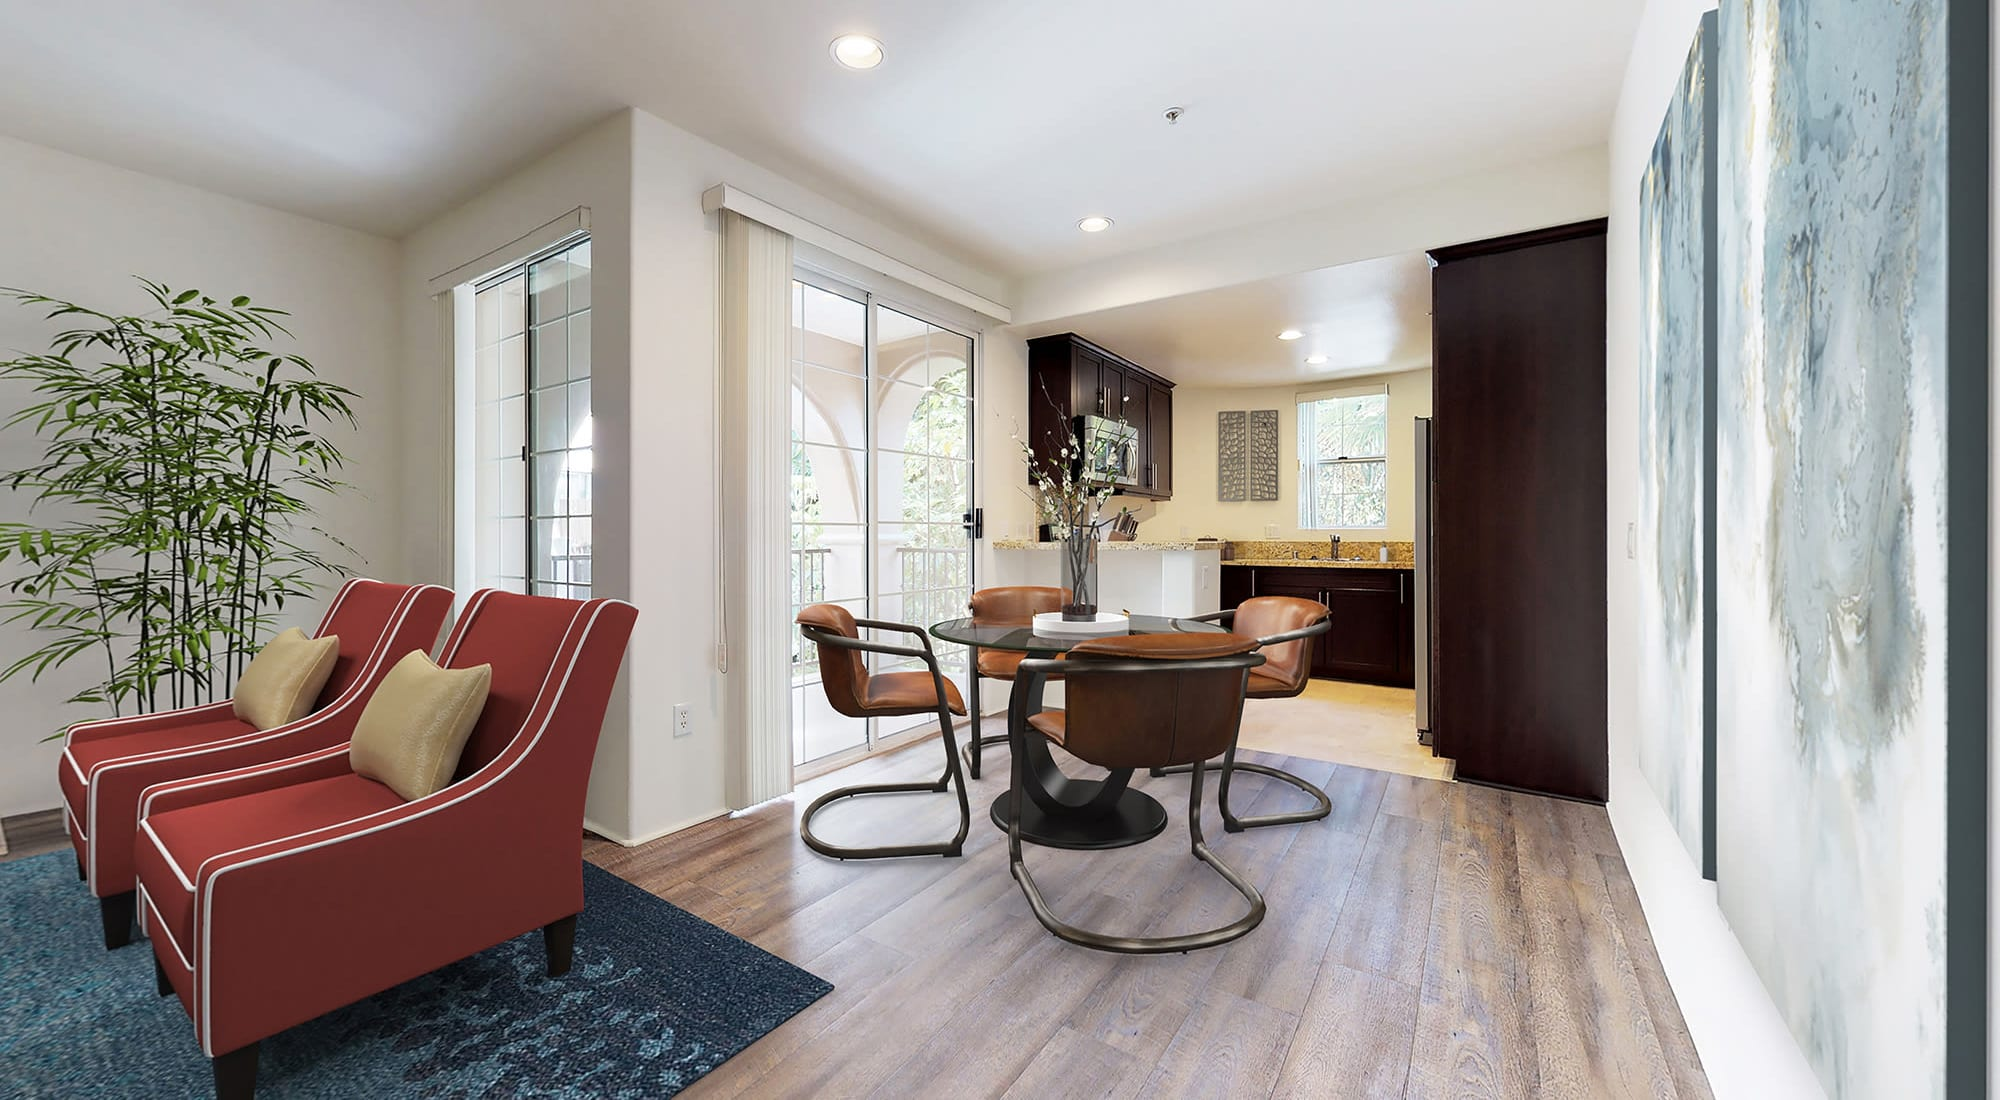 Open-concept living areas with hardwood flooring throughout in a model home at L'Estancia in Studio City, California